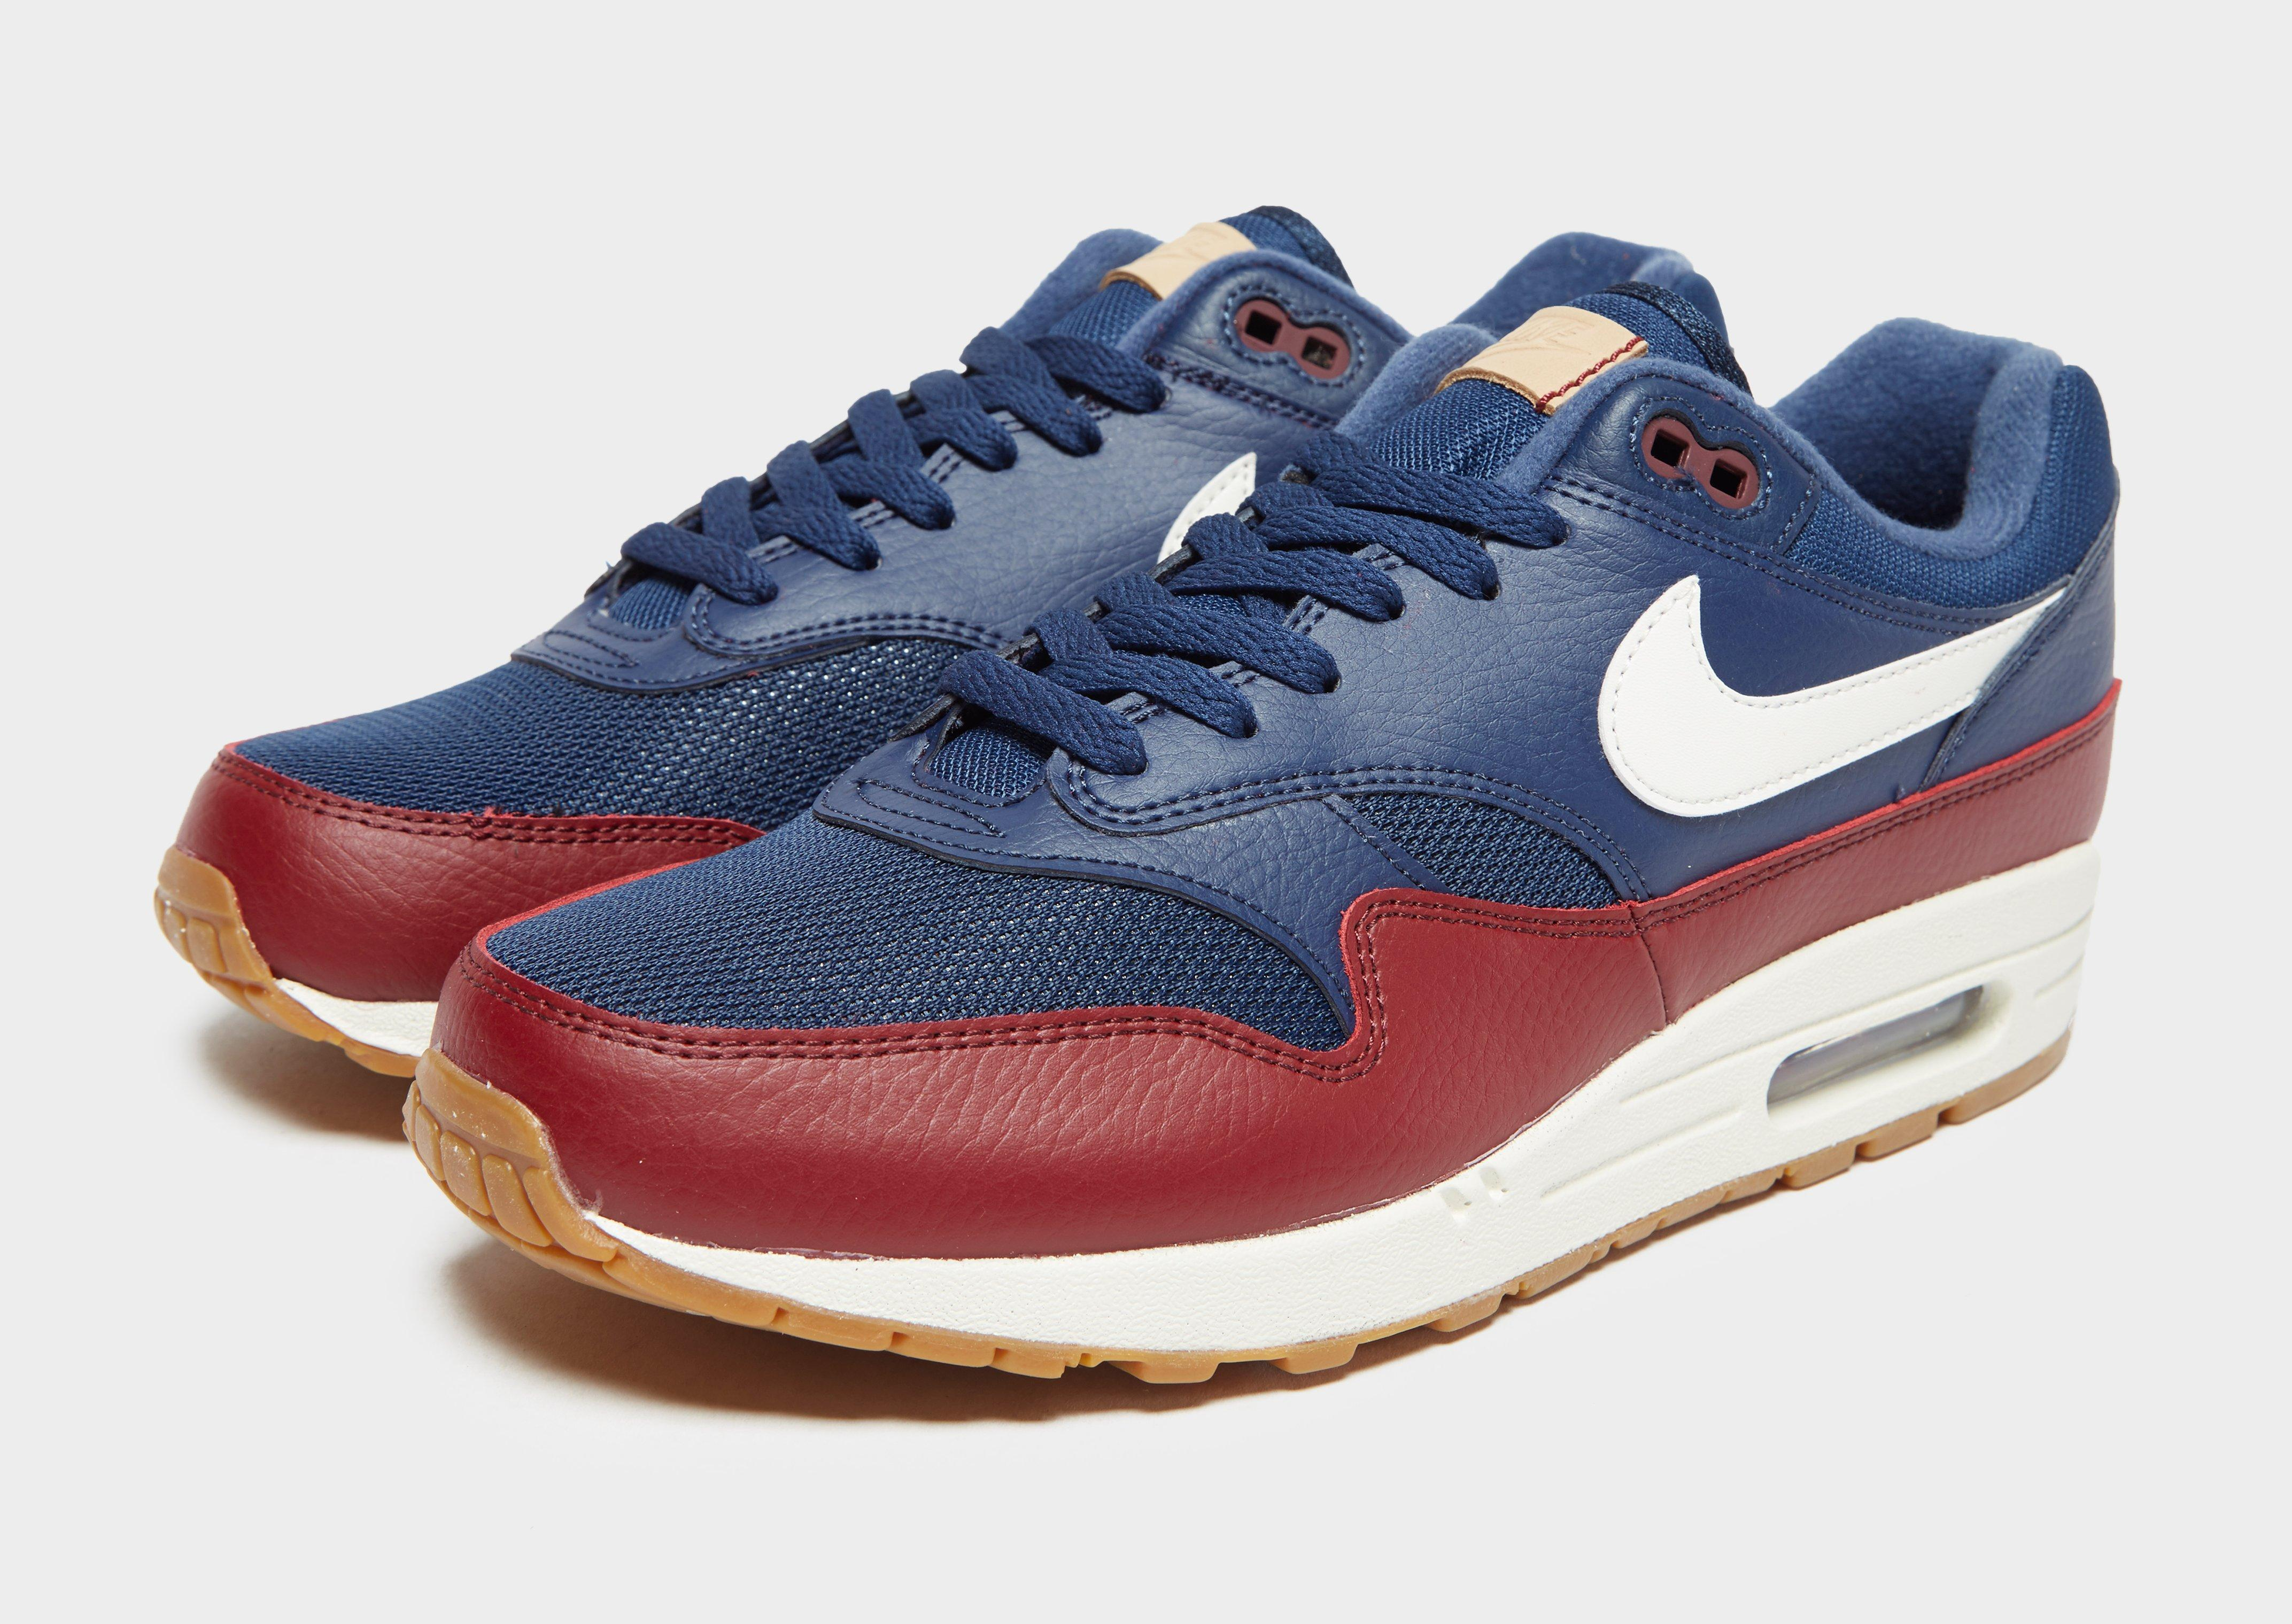 Nike Leather Air Max 1 Essential in Blue/Red (Blue) for Men - Lyst